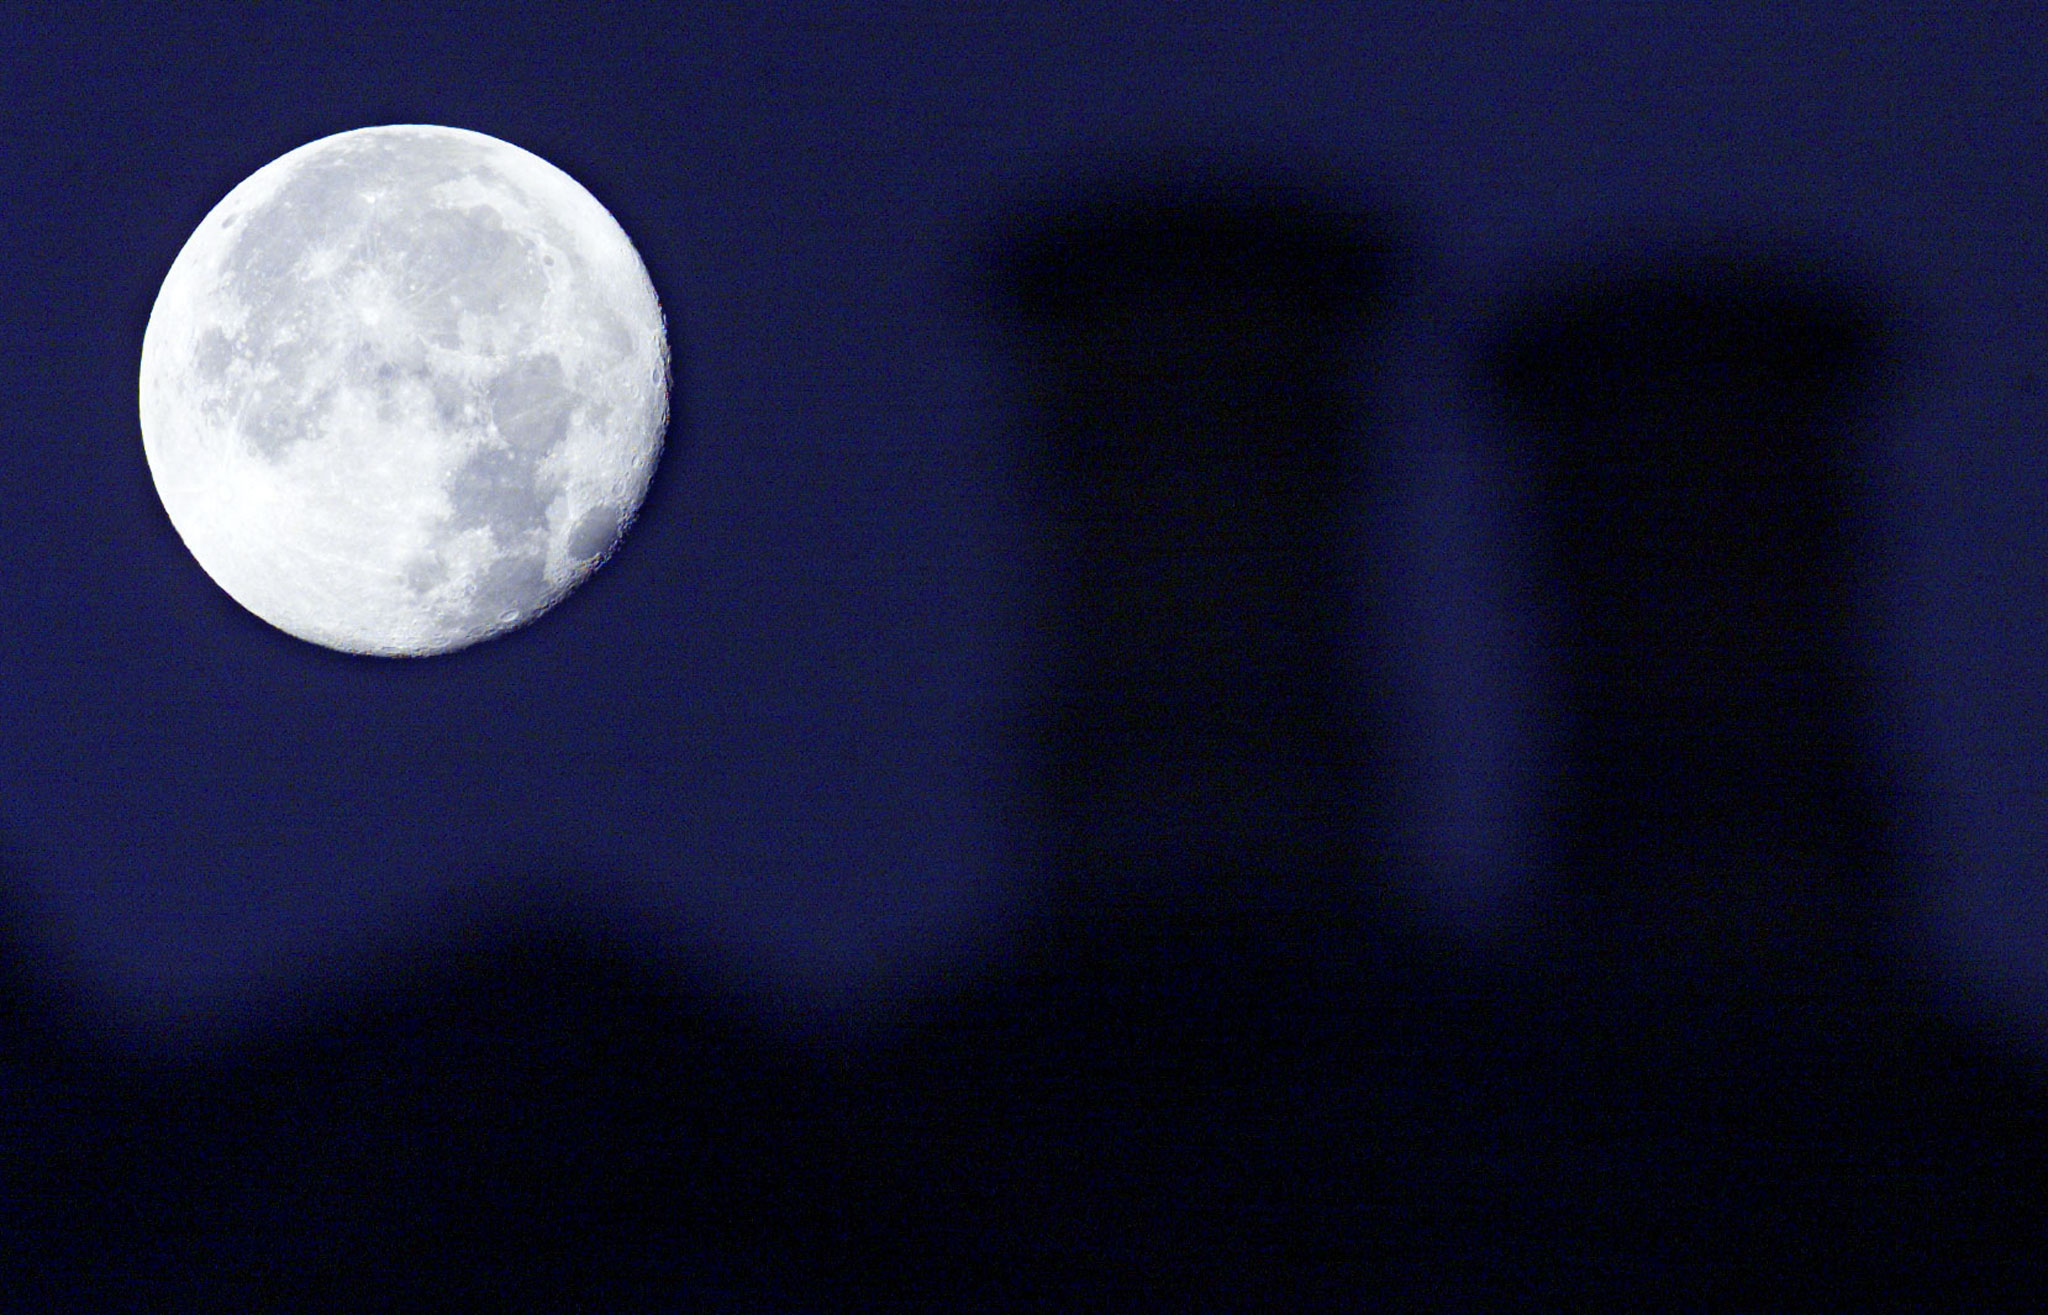 A full moon seen over London chimneys in the pre-dawn light October 26. Britain is experiencing torrential rain interspersed with clear blue skies.  RUS - RTRRSTK